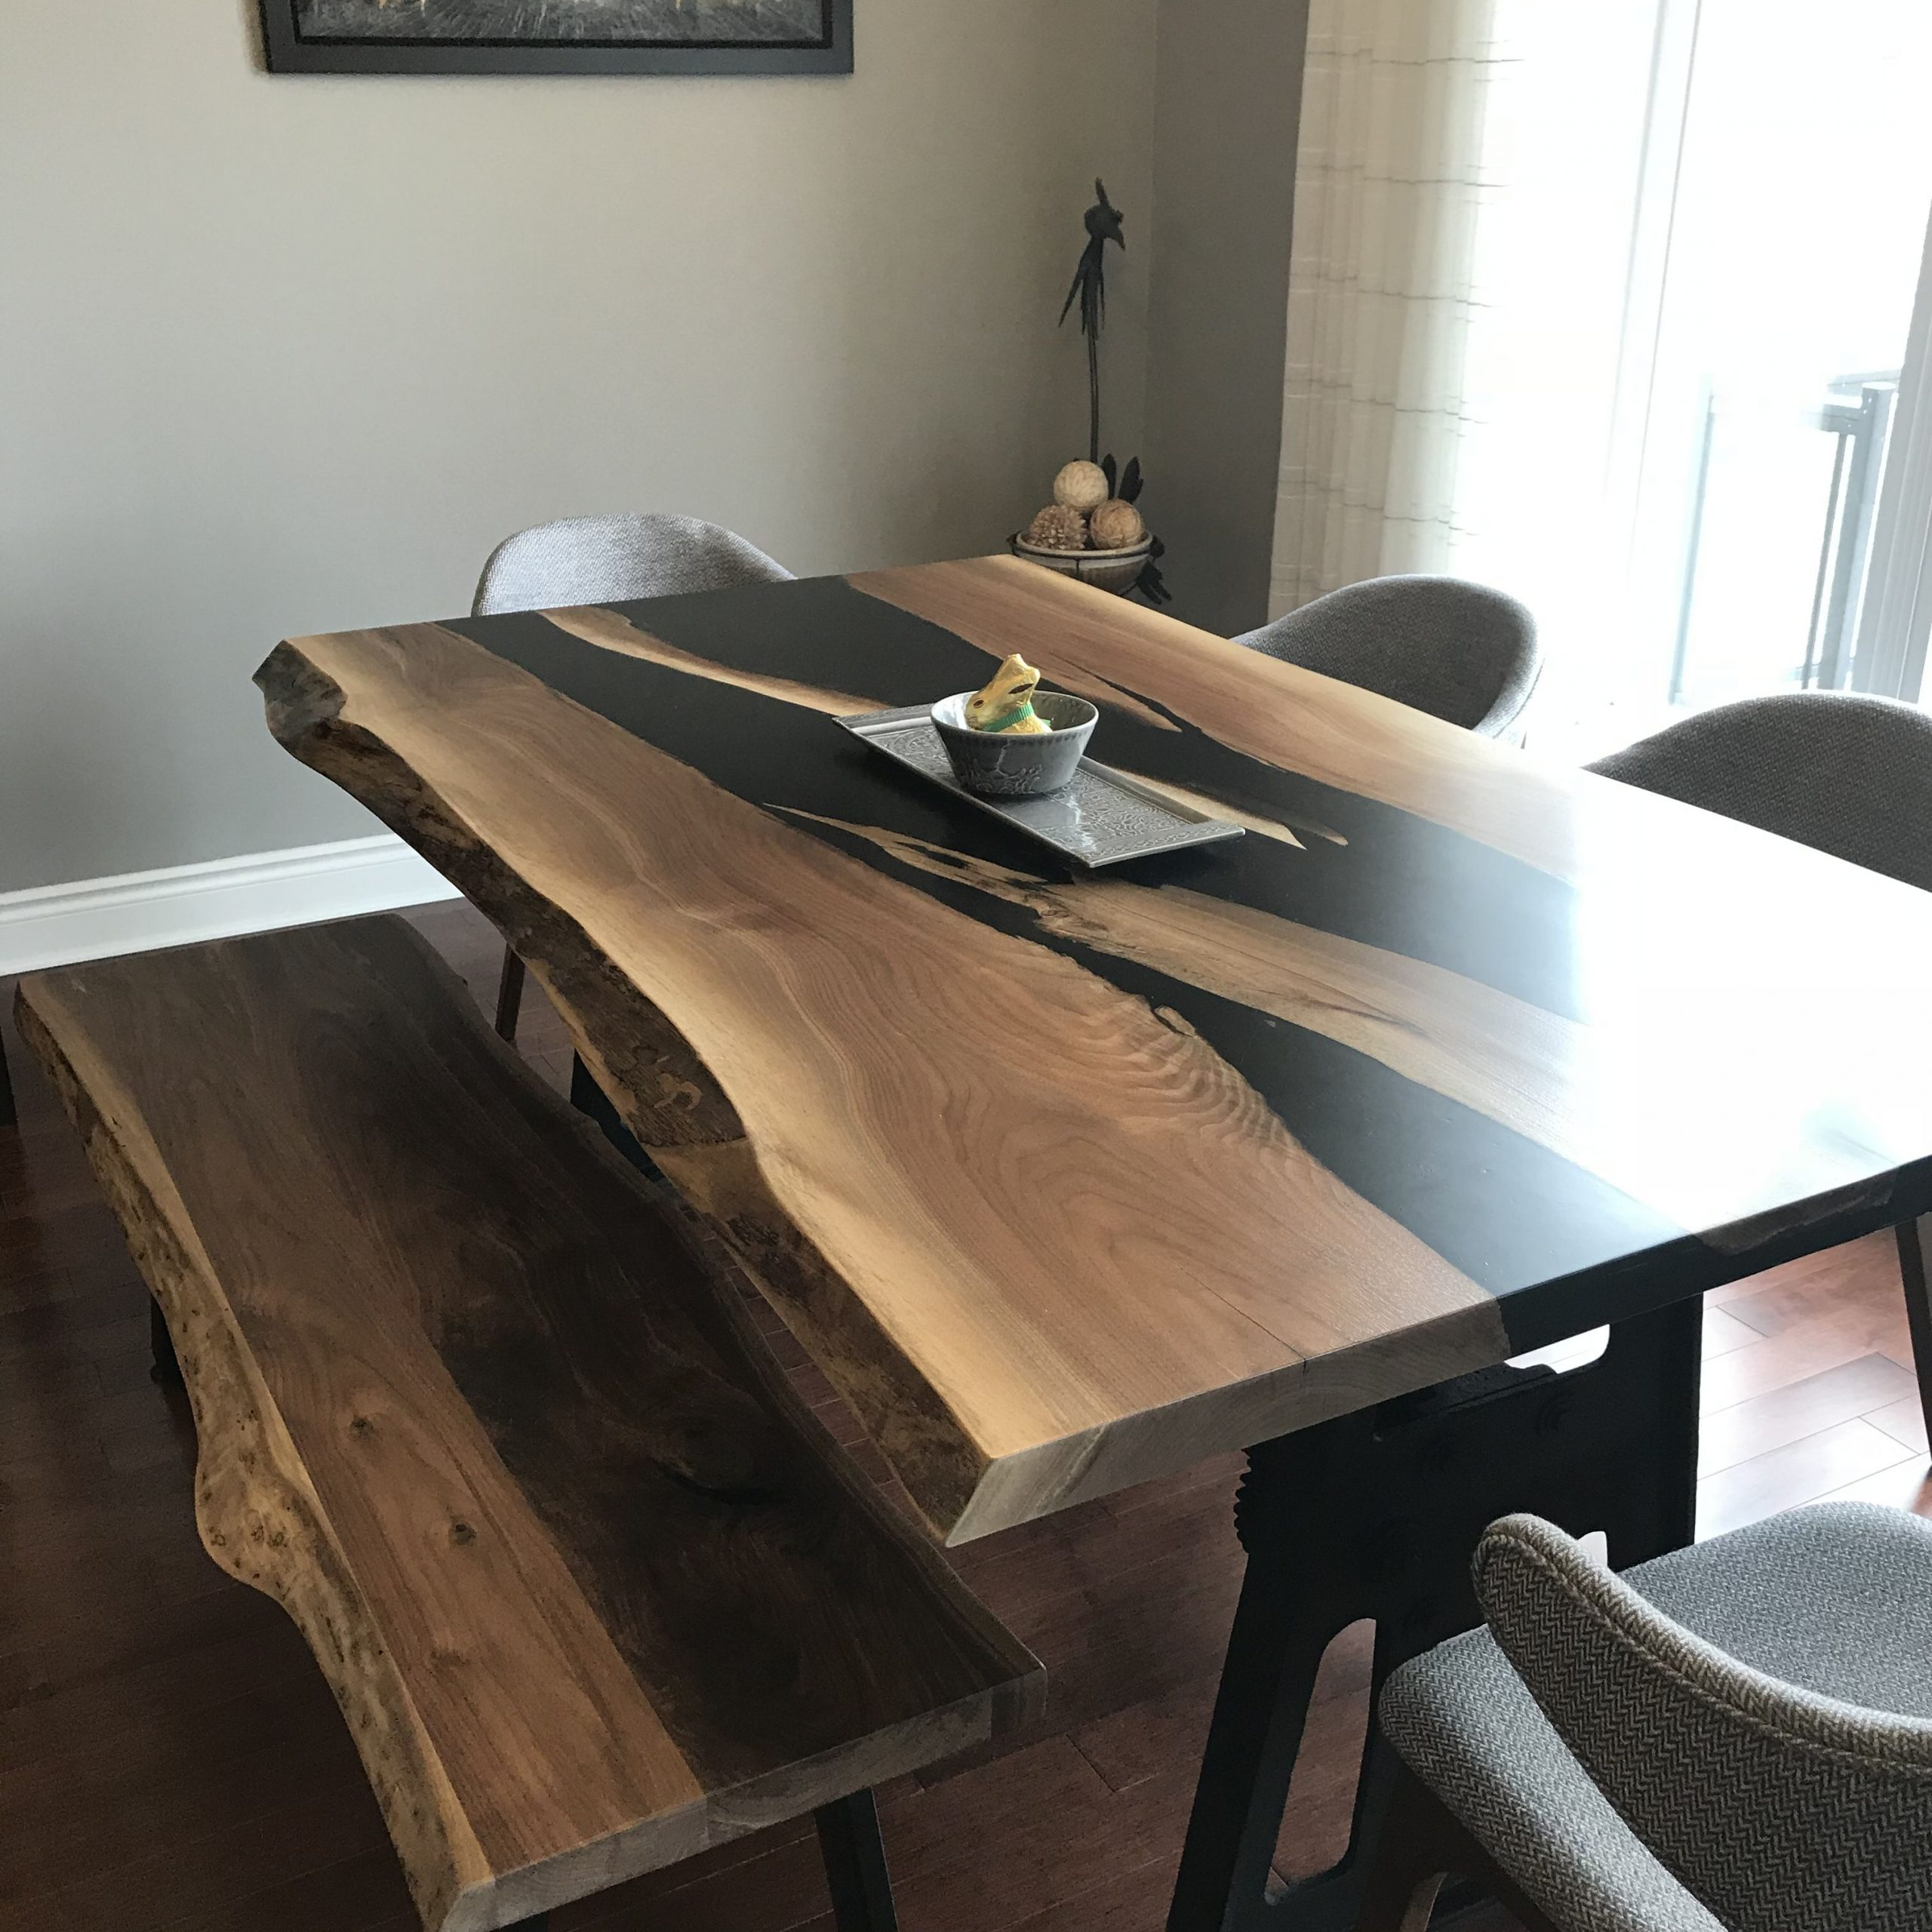 Walnut Finish Live Edge Wood Contemporary Dining Tables Throughout Preferred Live Edge Walnut Black River Resin Table With Bench (View 20 of 25)